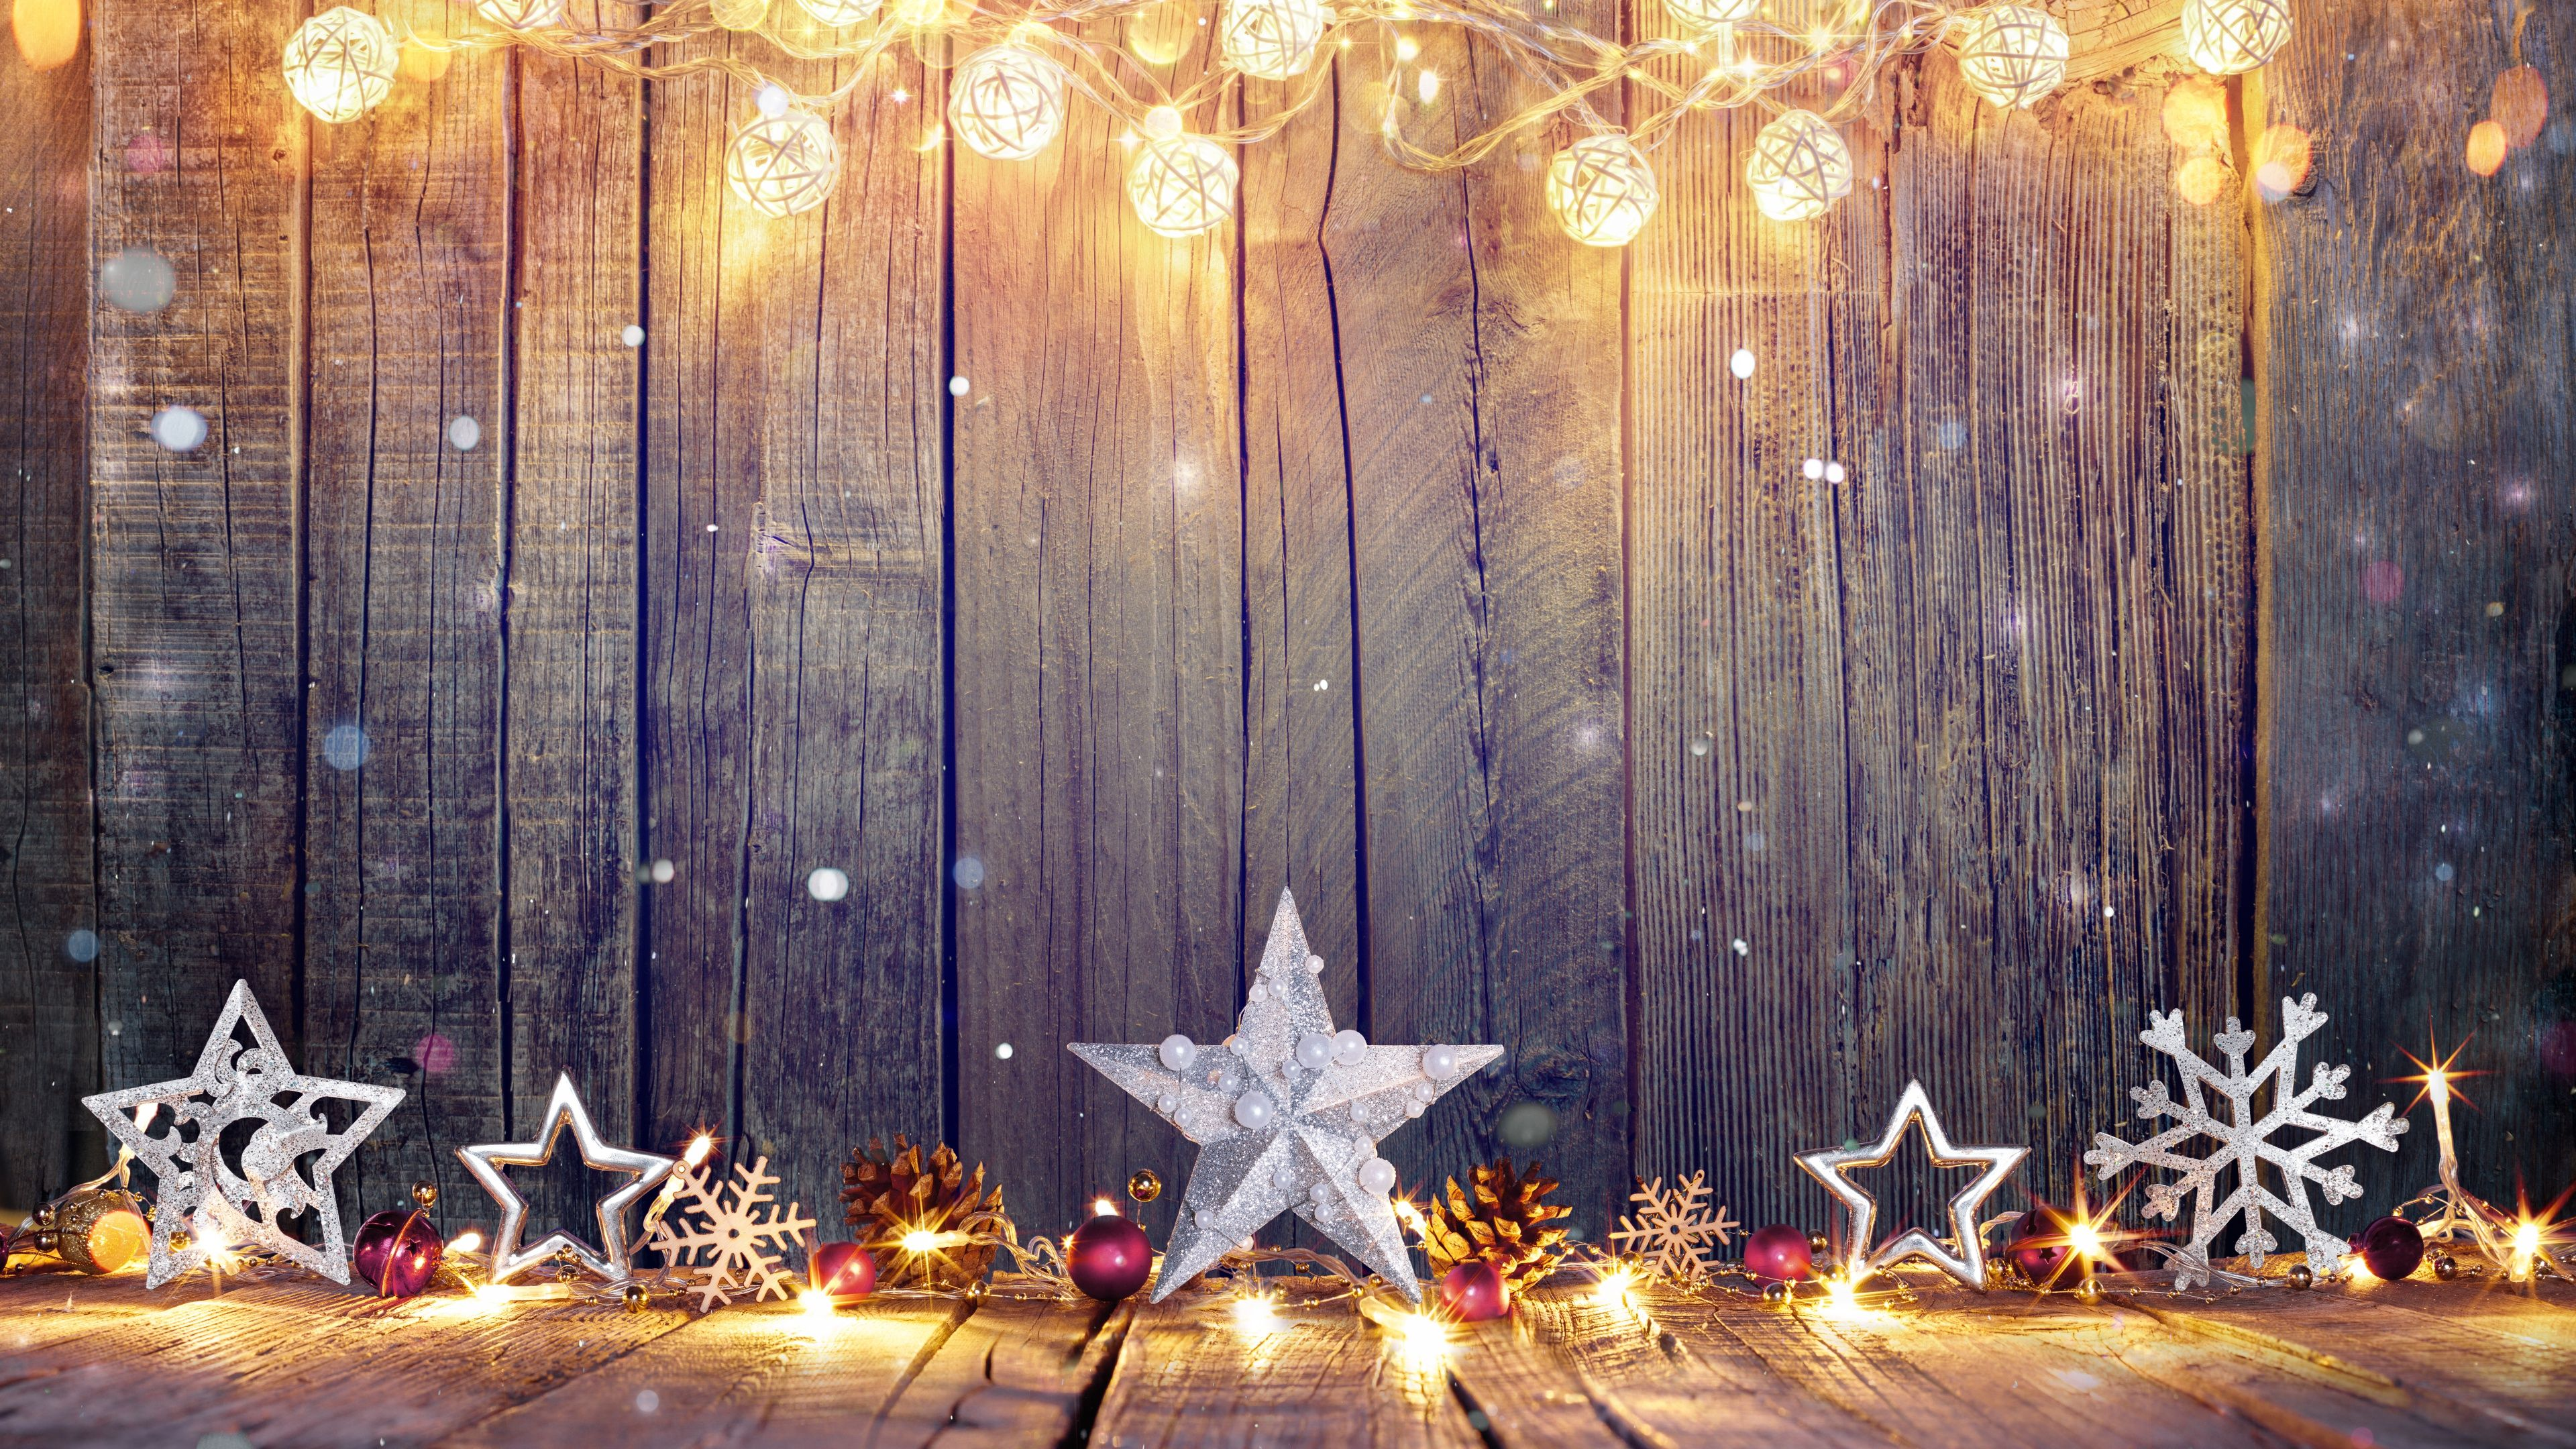 Christmas Background Hd Images.3840 X 2160 Christmas Wallpapers Top Free 3840 X 2160